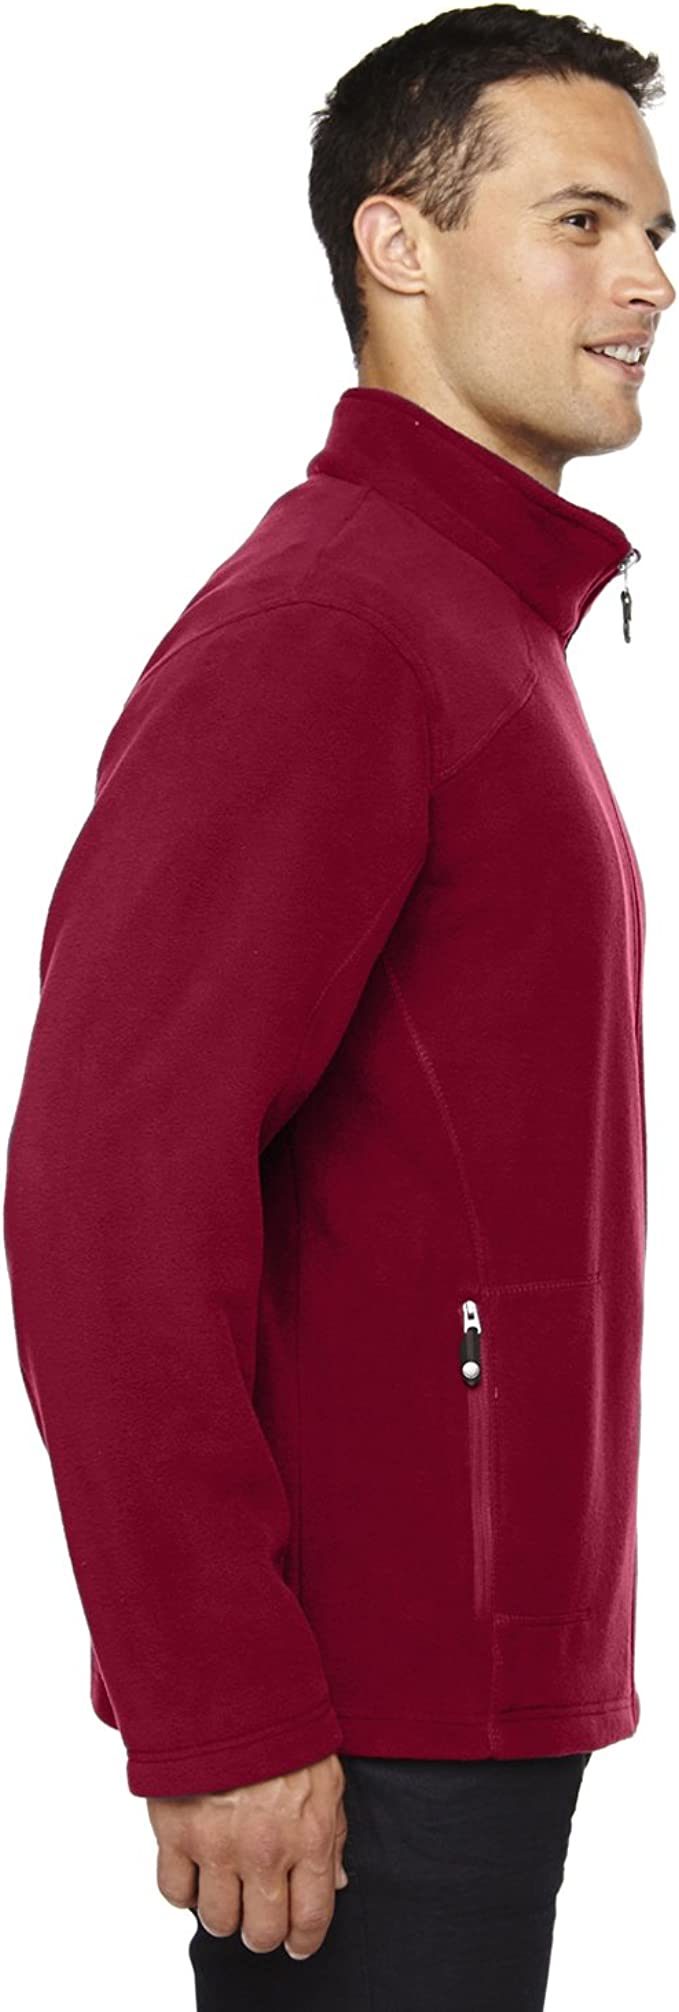 North End Voyage Mens Fleece Jacket3XL CLASSIC RED 88172